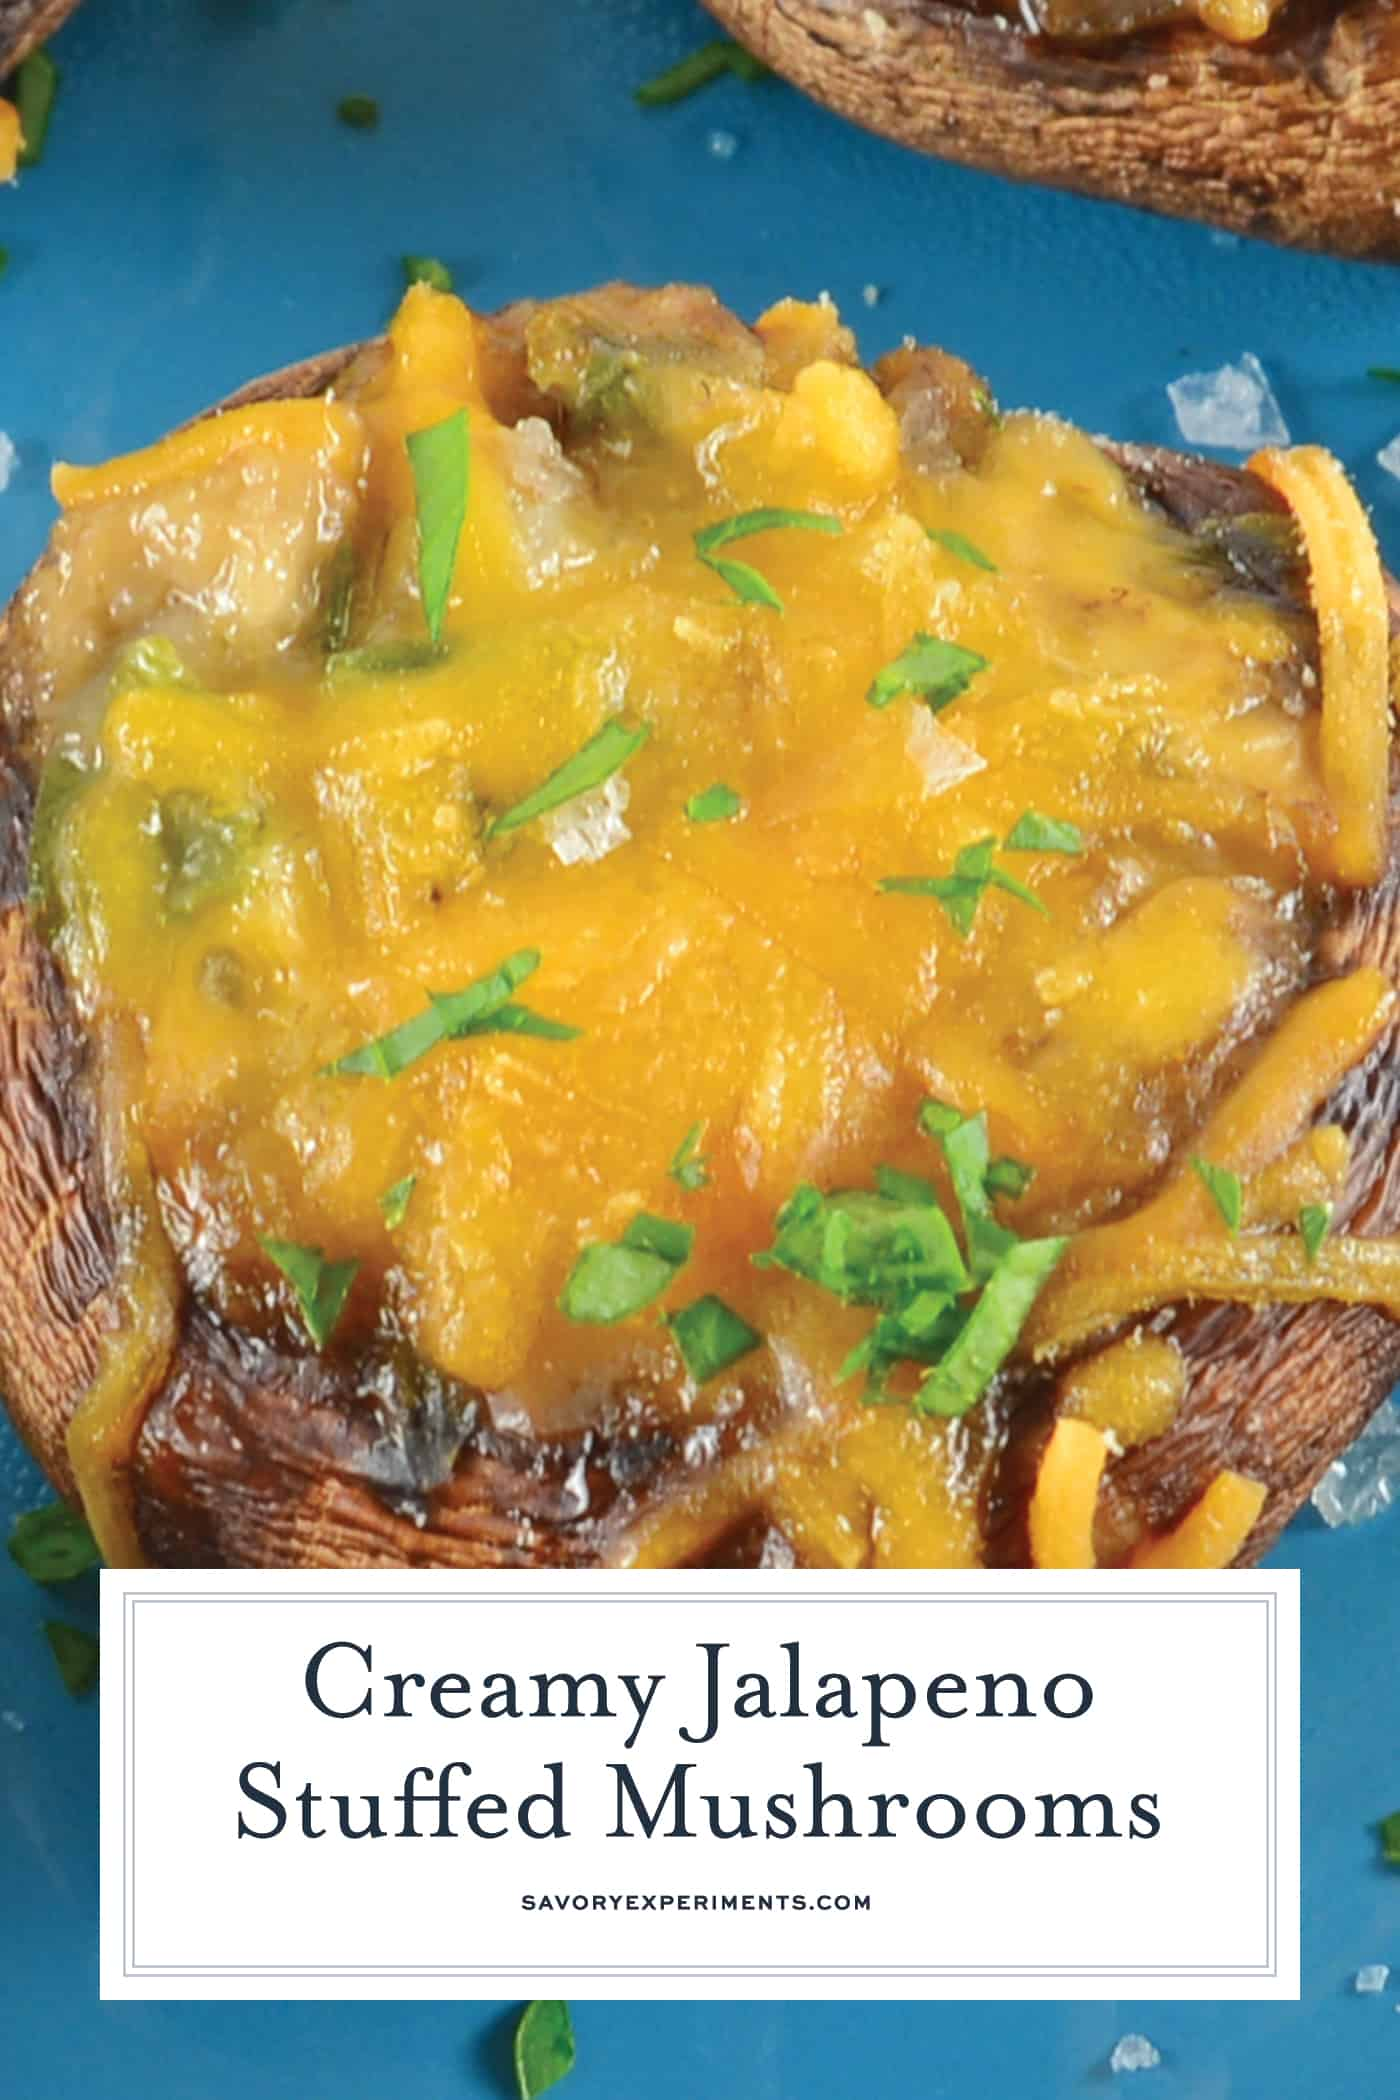 Creamy Jalapeno Stuffed Mushrooms are an easy jalapeno popper make ahead recipe using cream cheese and fresh jalapenos.The perfect party appetizer! #stuffedmushrooms #jalapenopopperrecipes #makeaheadappetizers www.savoryexperiments.com